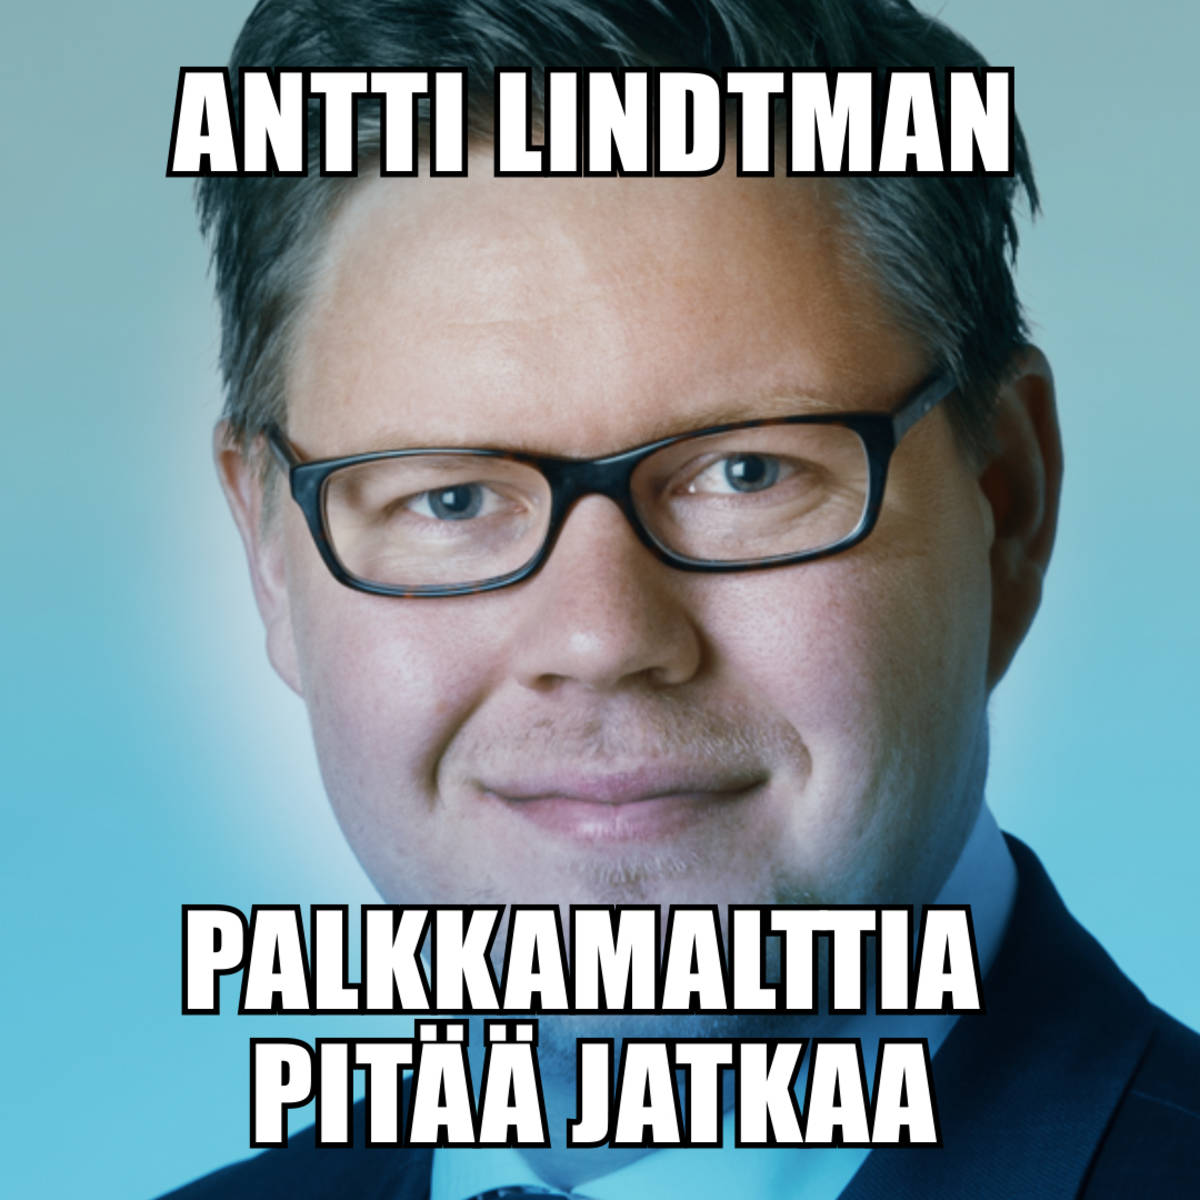 Antti Lindtman